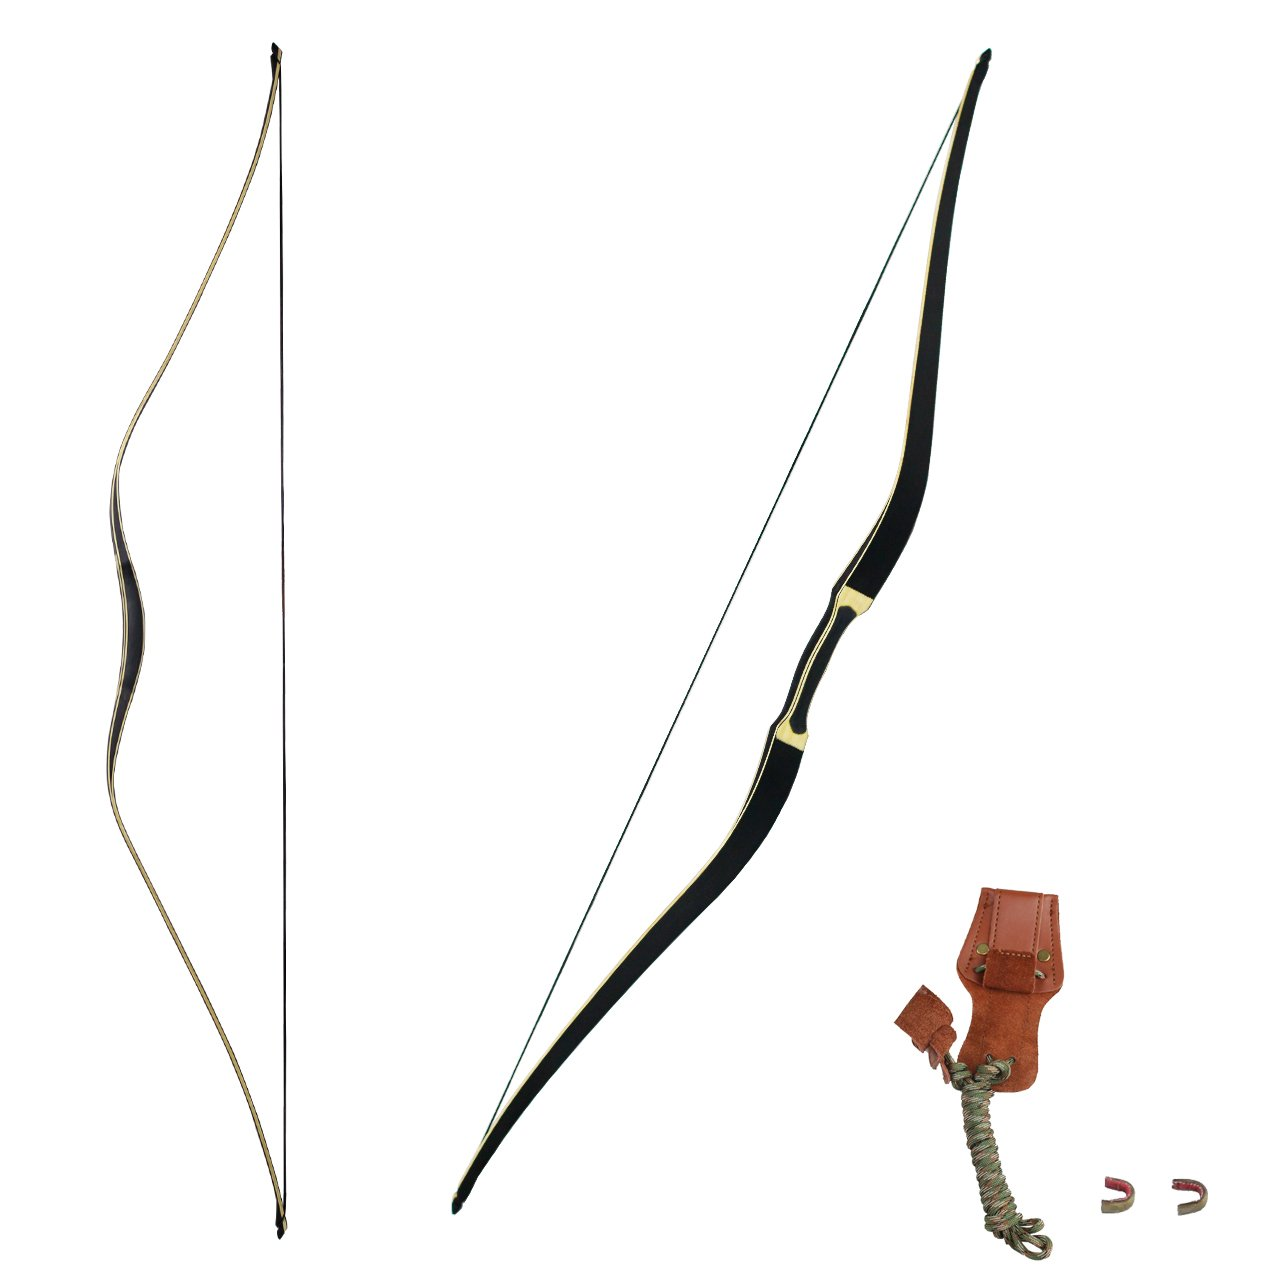 SinoArt Longbow 58 One Piece Horsebow with Stringer Tool String Nocks